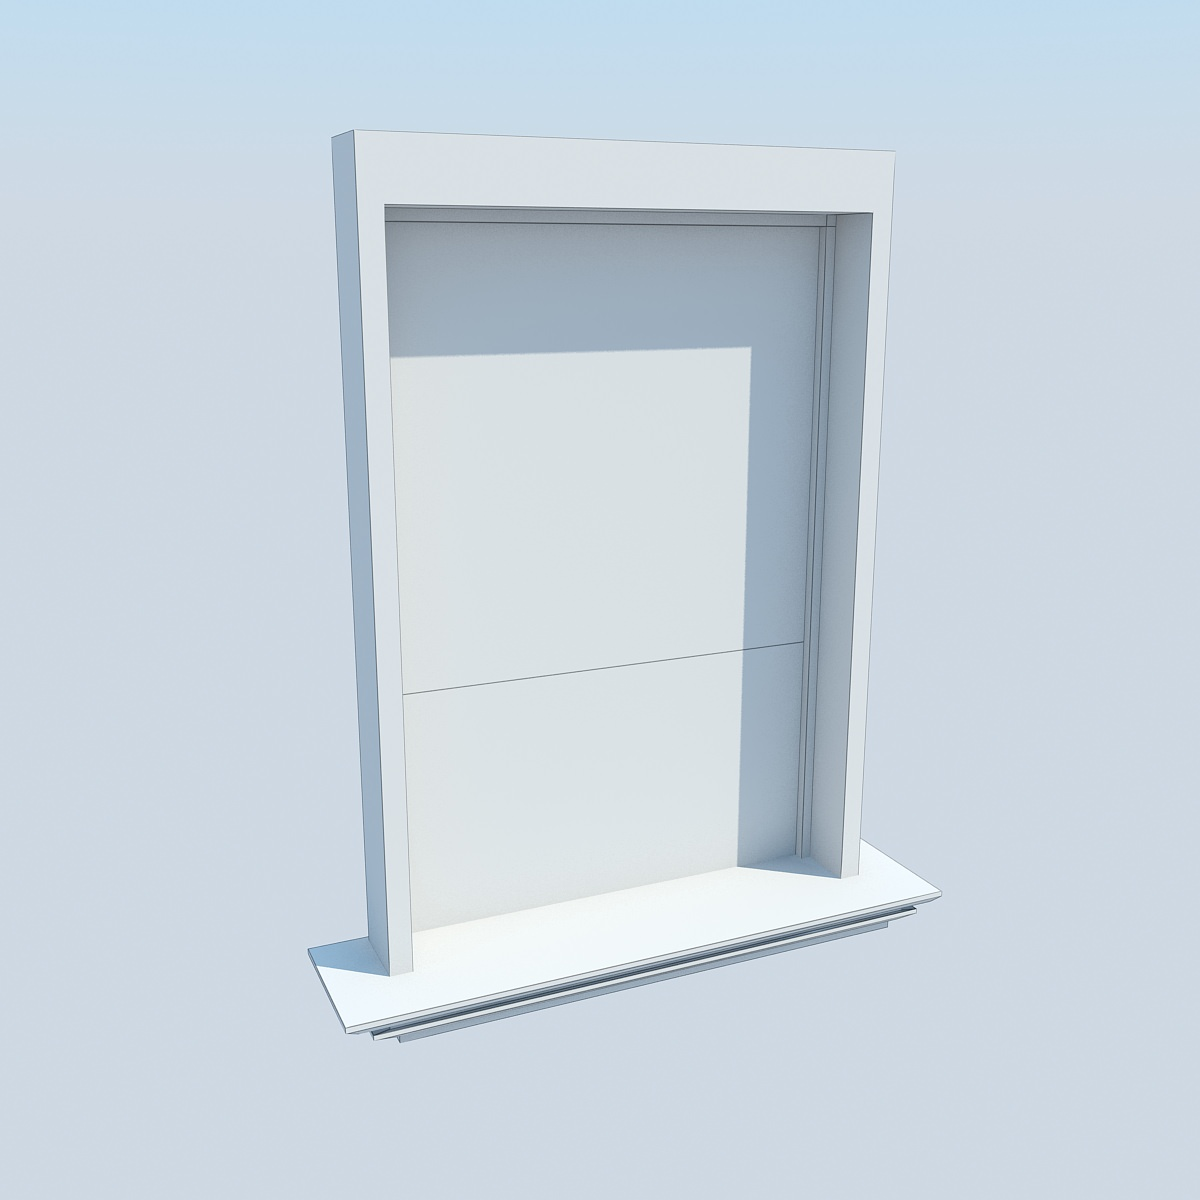 Windows max 2011 3d model max obj 3ds fbx for Window 3d model